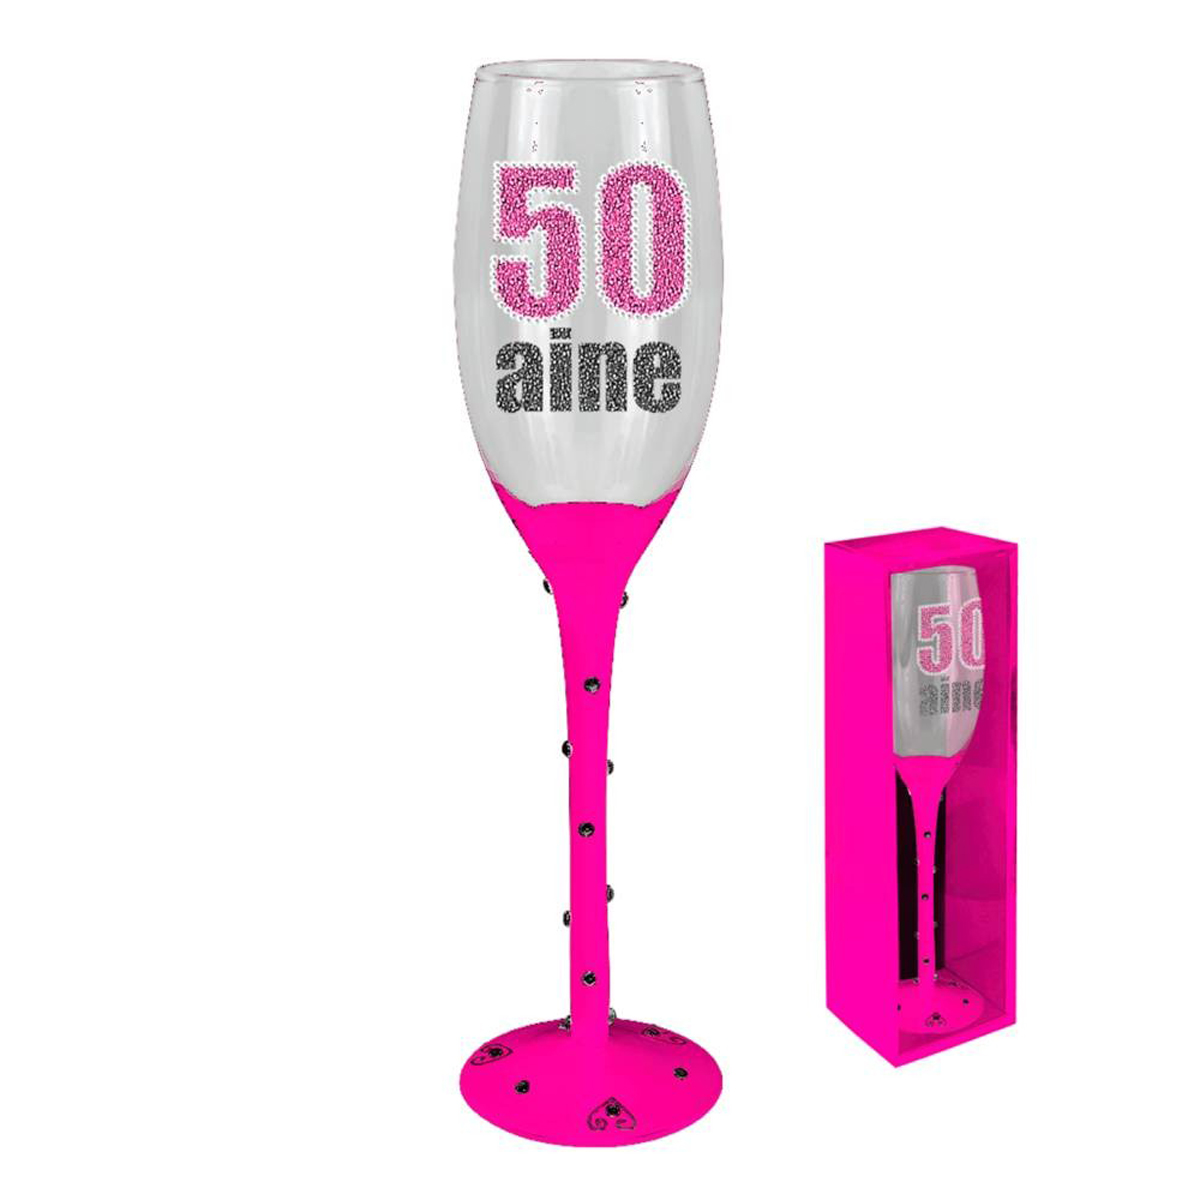 Coupe flute à champagne \'50 ans\' rose - [N2748]